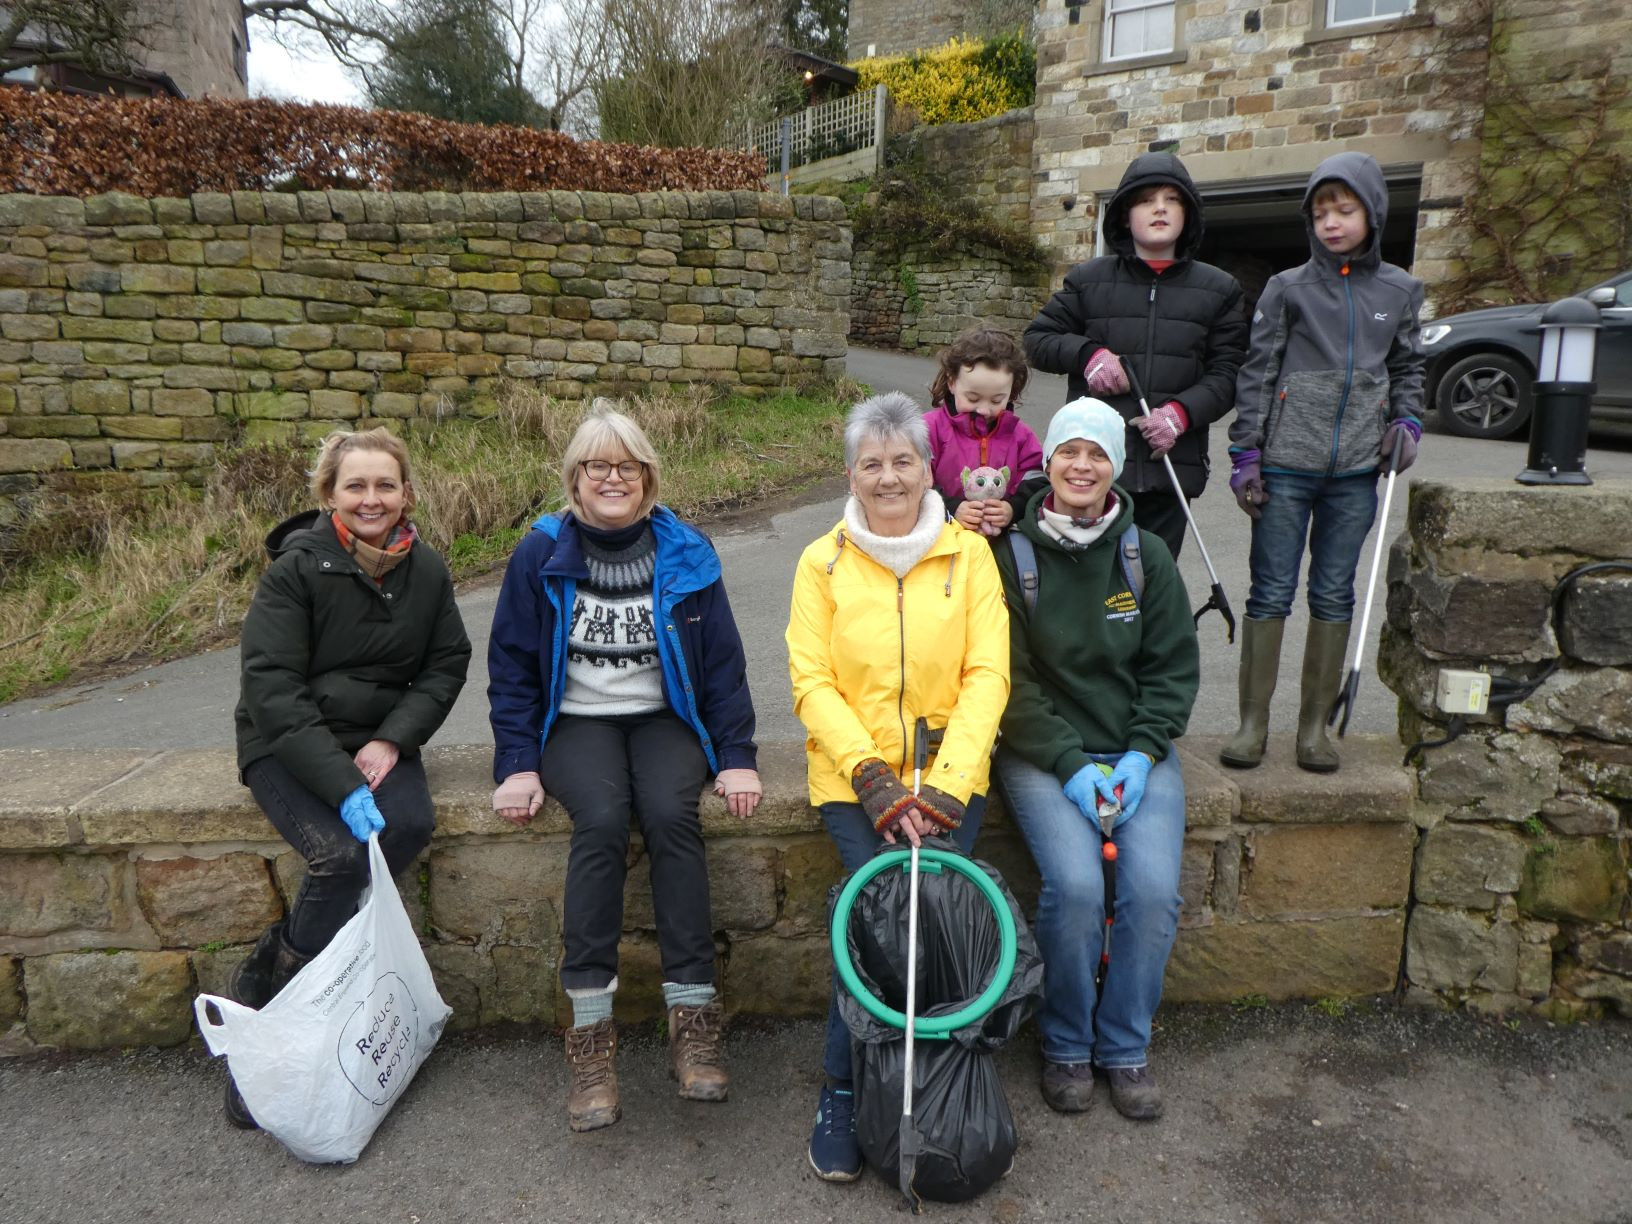 Litter pick Jan 2020